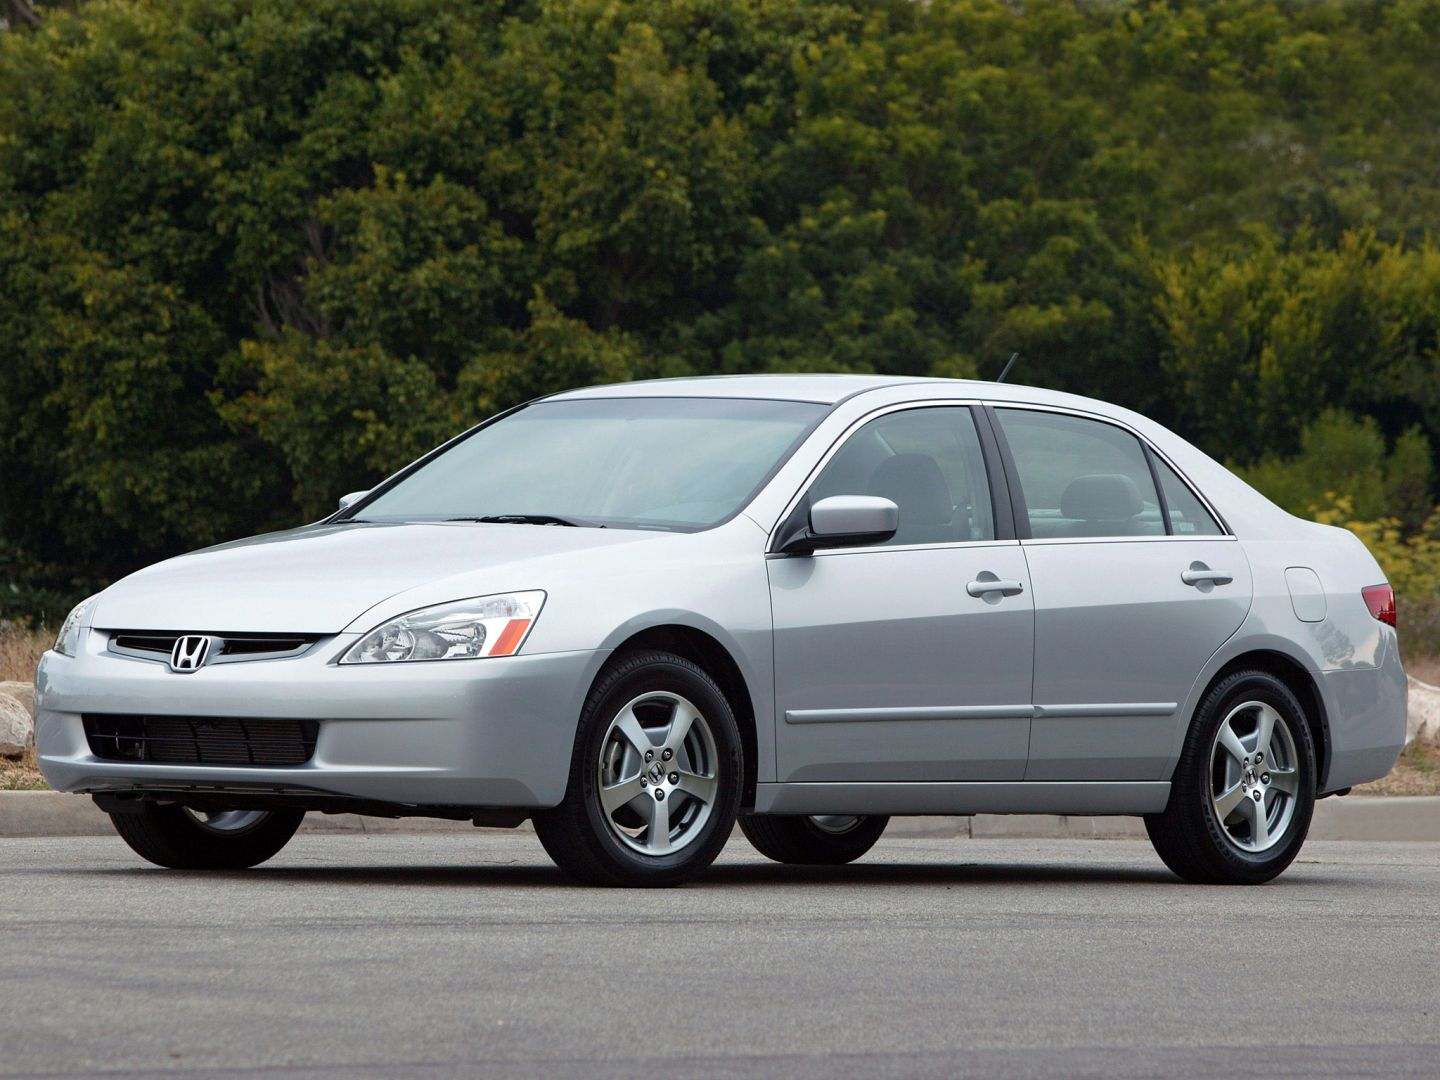 New Honda Accord >> HONDA Accord Sedan US specs - 2005, 2006, 2007 - autoevolution